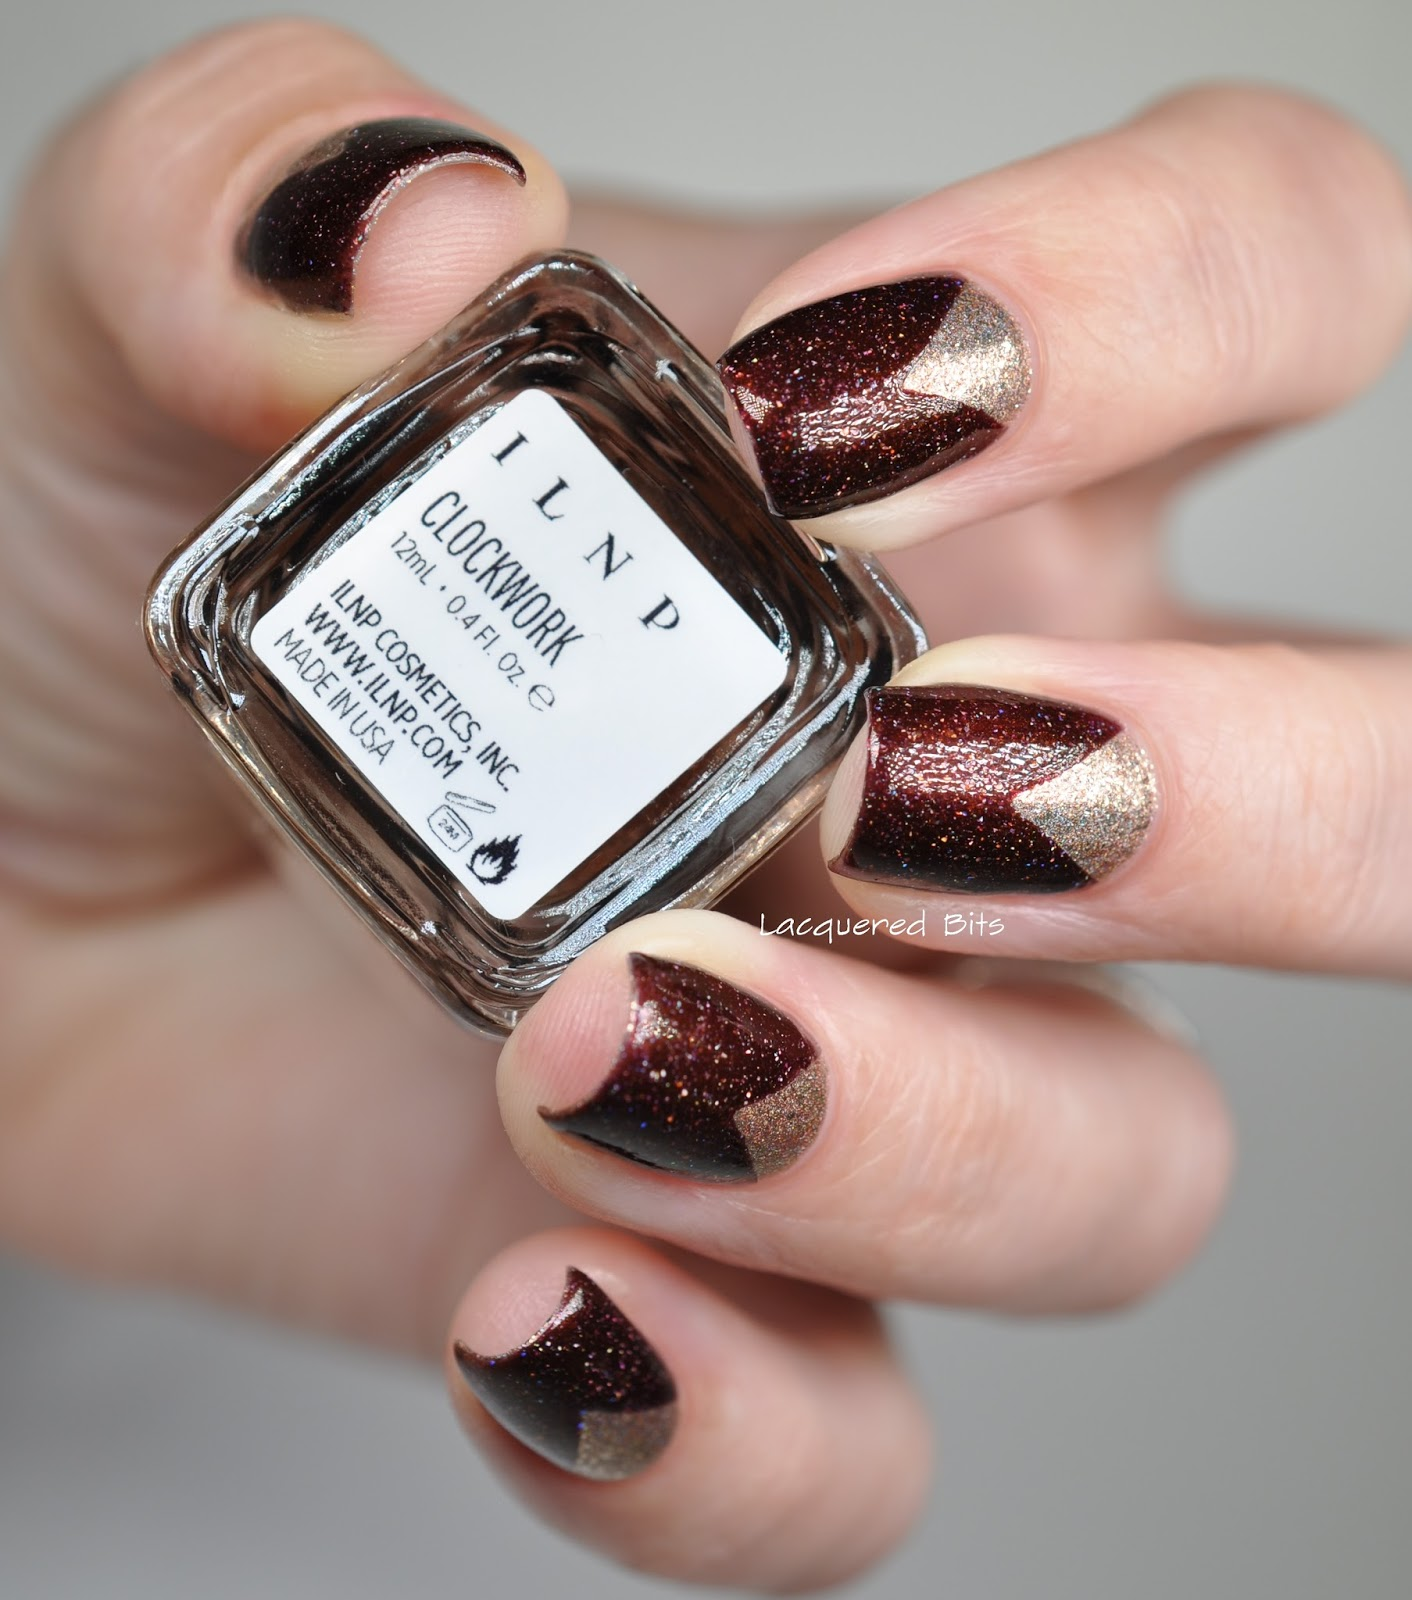 Triangled Nails Wrapped In Fall Hues - Lacquered Bits